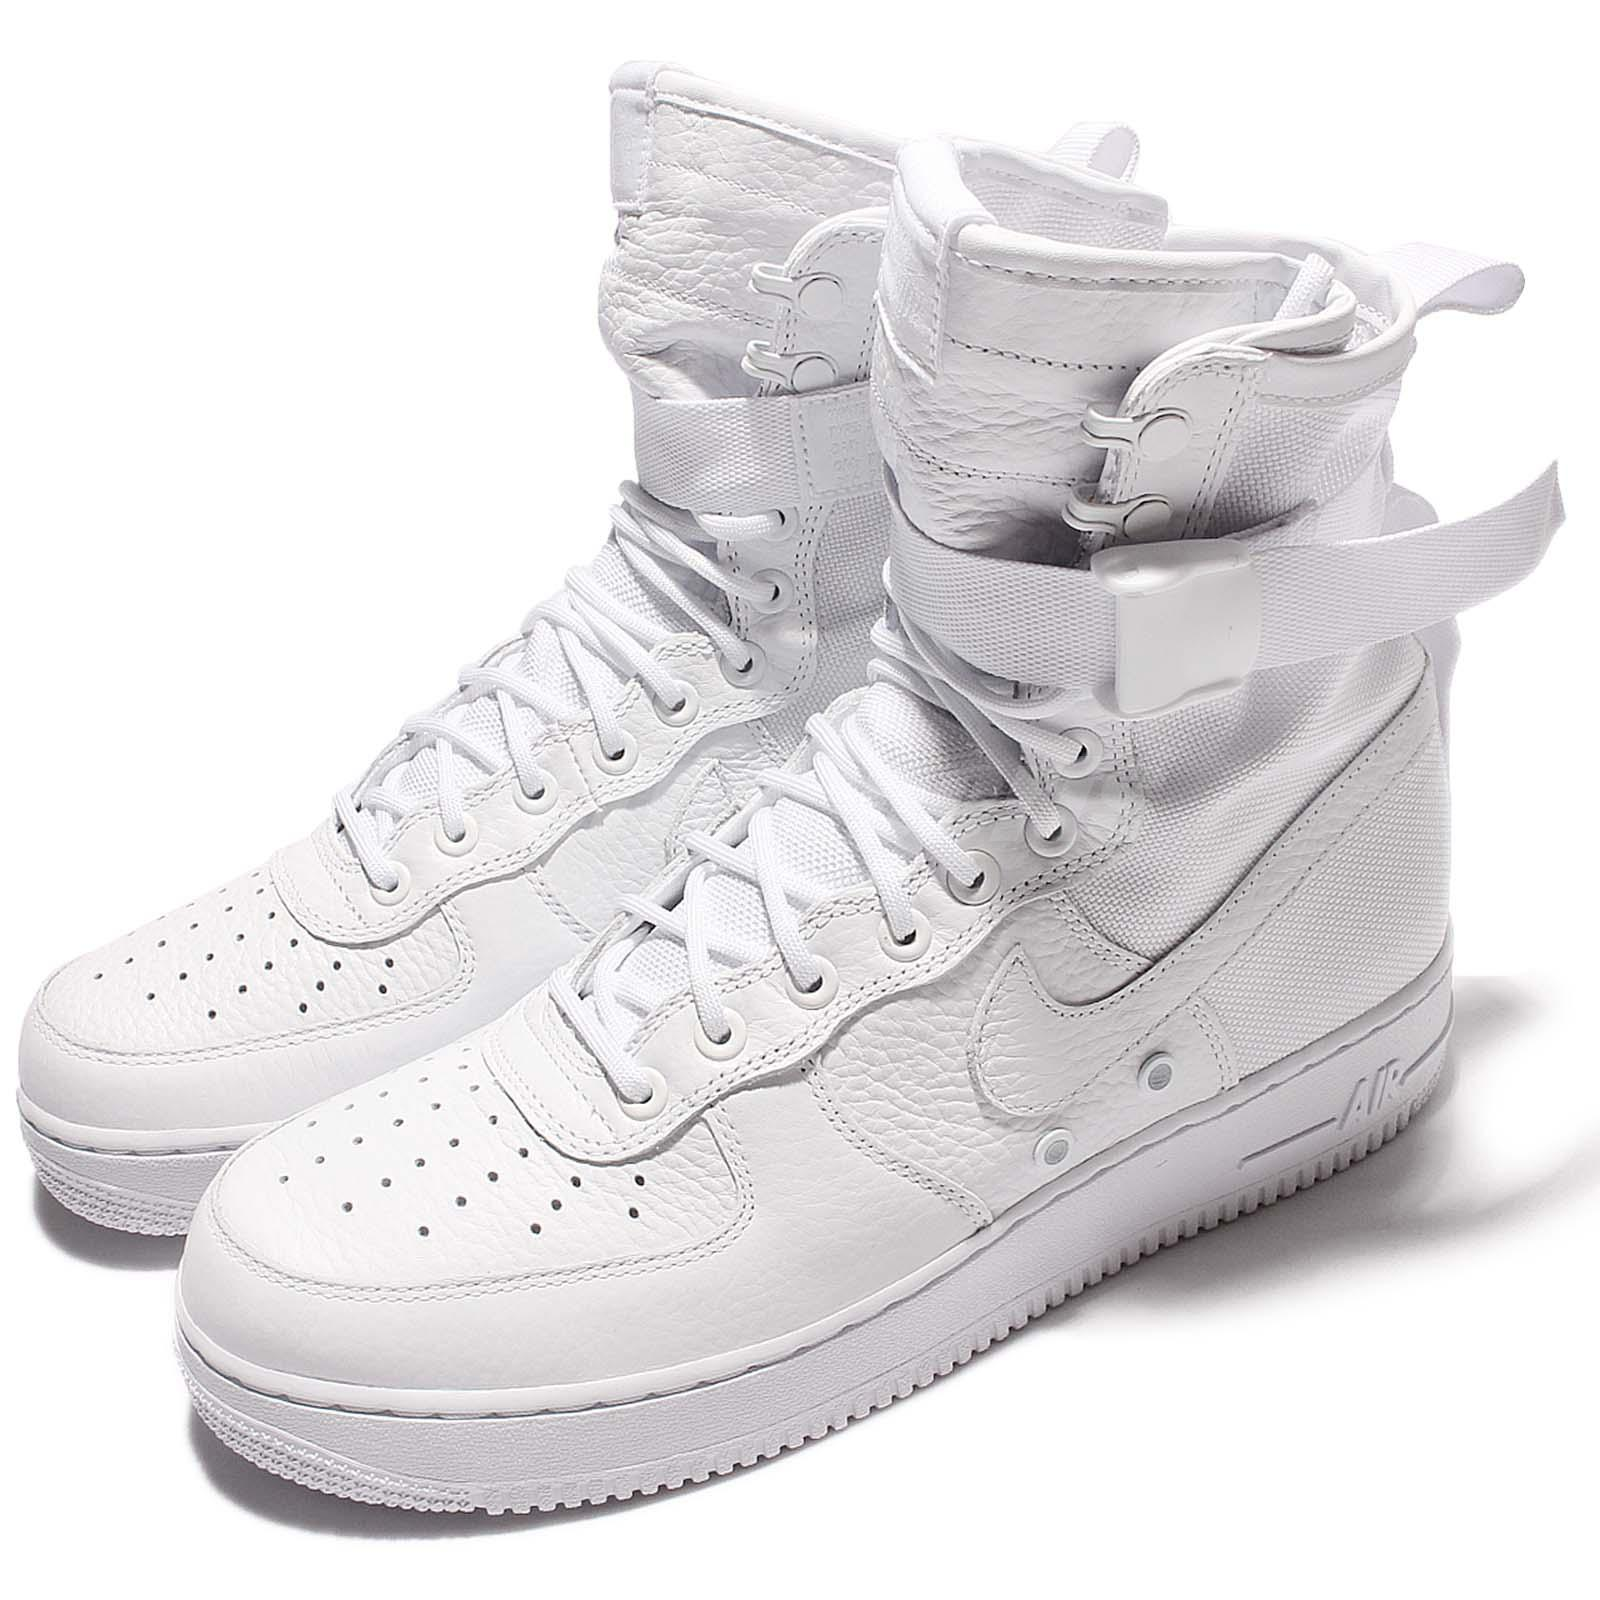 Nike SF AF1 QS Special Field Complexcon Triple White Men Air Force 903270100